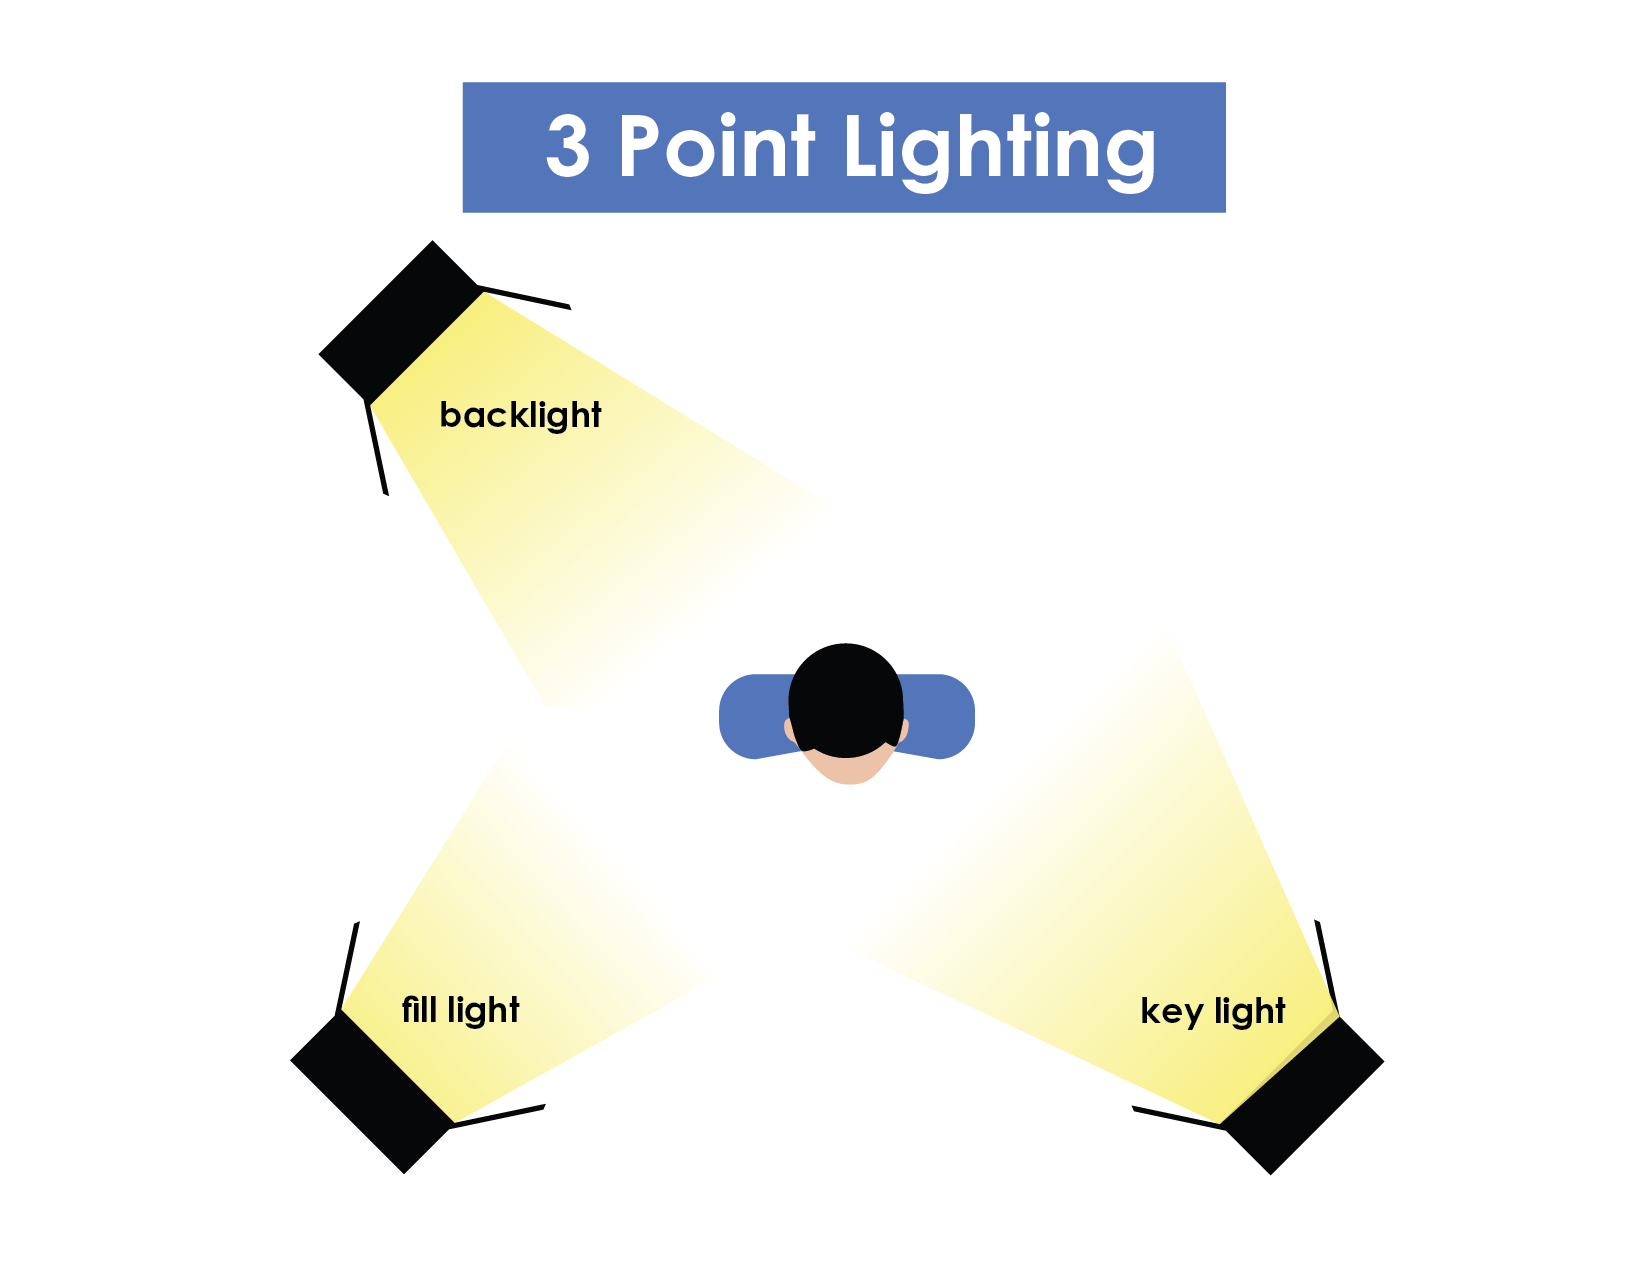 3 Point Lighting Guide